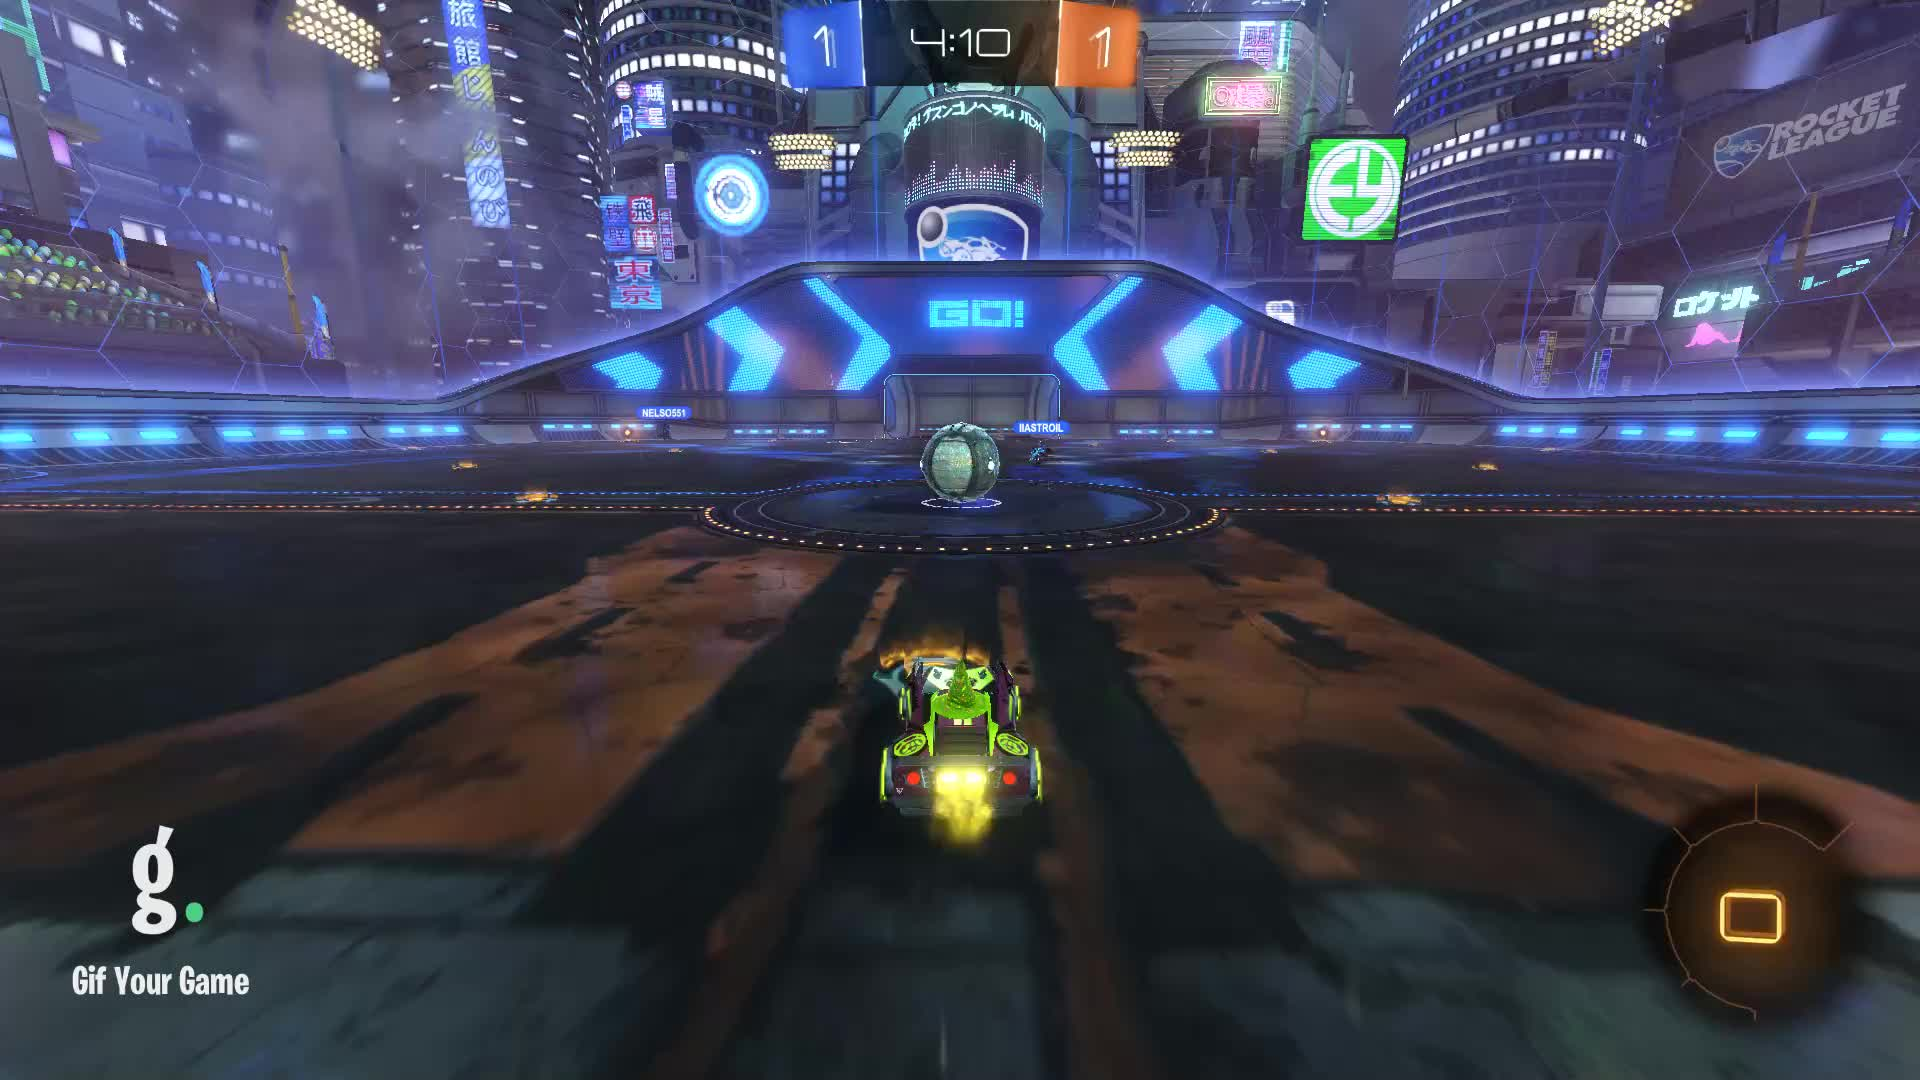 Alexander the Magnificent, Gif Your Game, GifYourGame, Goal, Rocket League, RocketLeague, Goal 3: Alexander the Magnificent GIFs